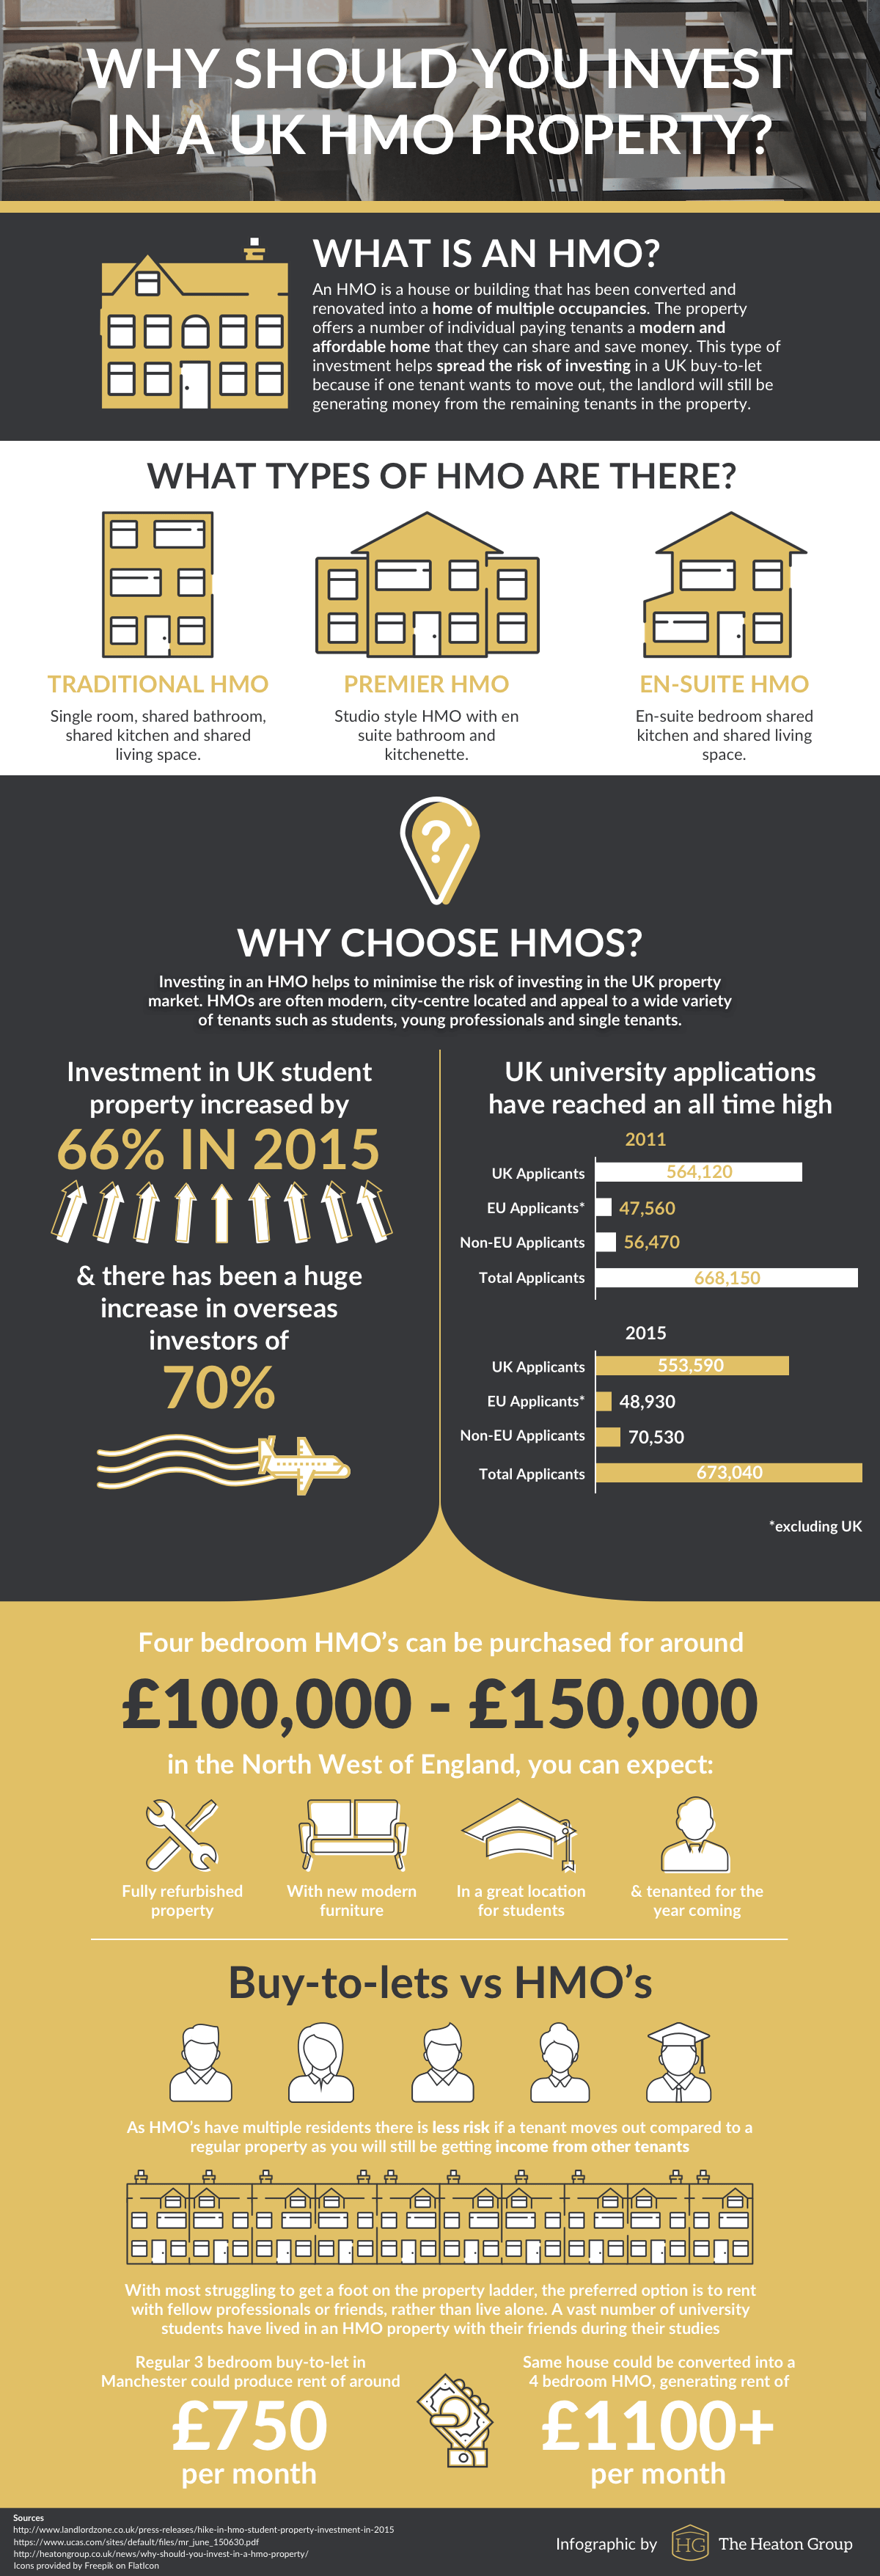 Why Should You Invest In a UK HMO Property?